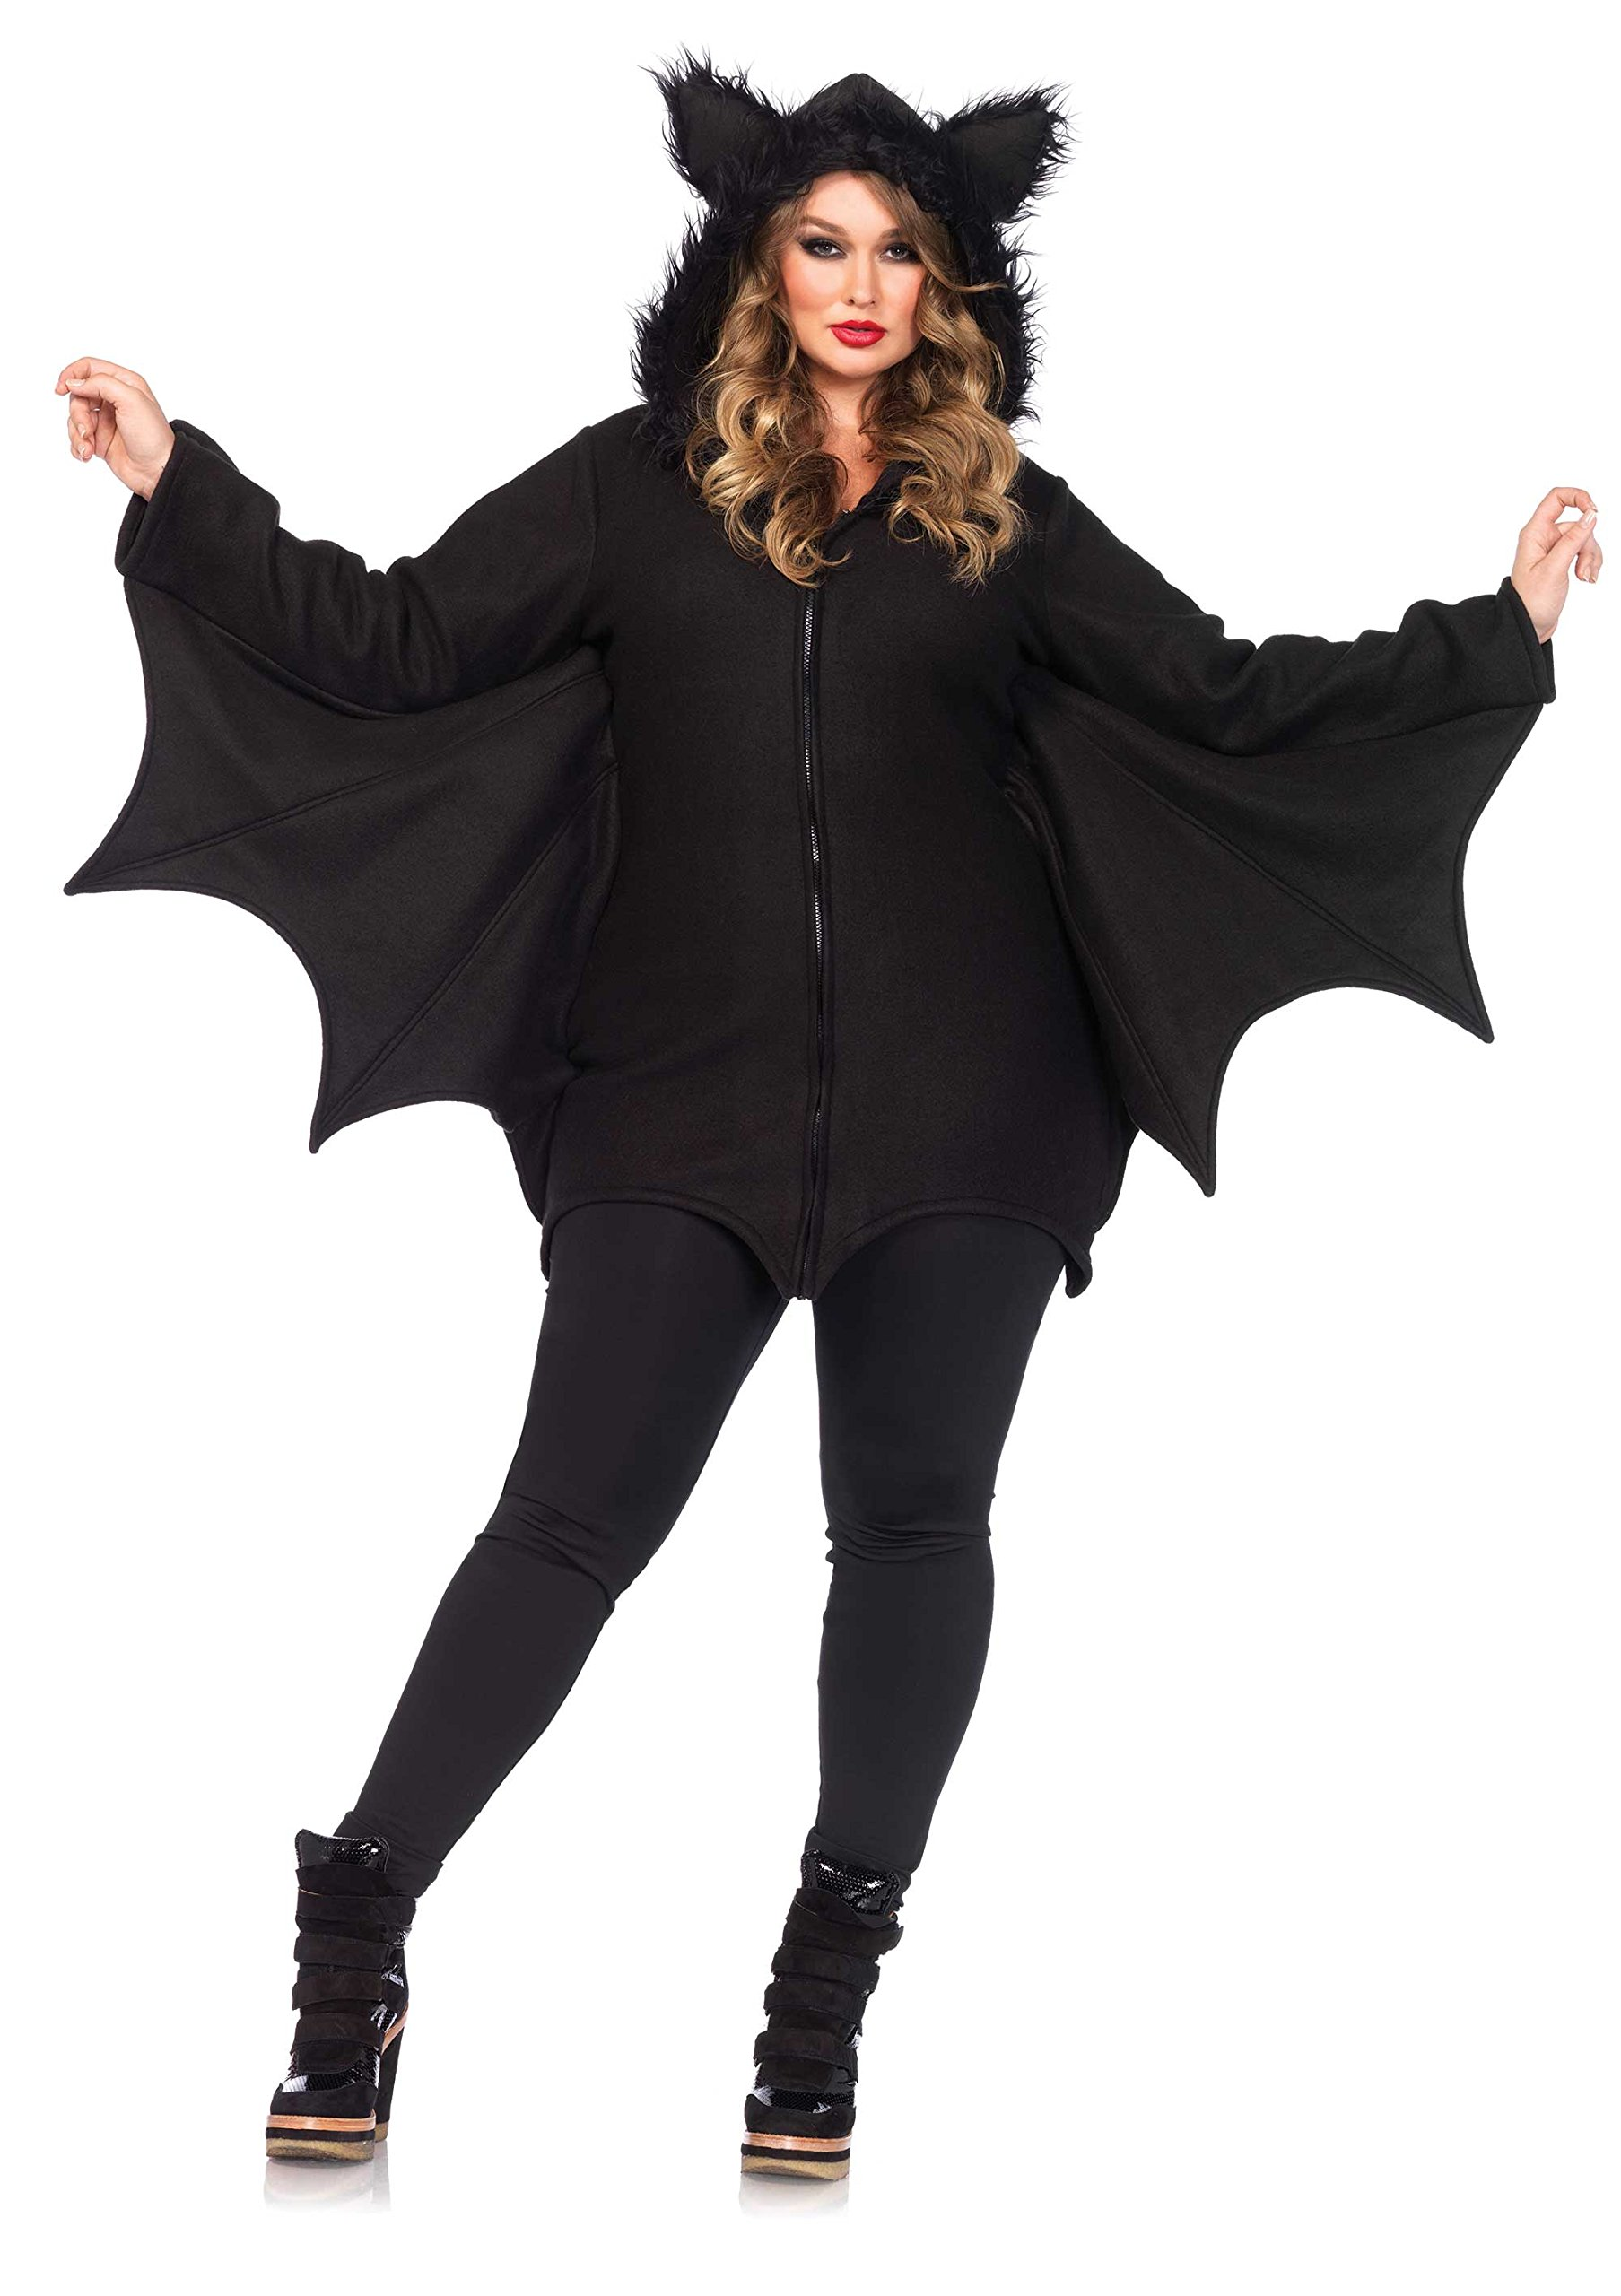 0a8e025cccb Leg Avenue Women s Cozy Bat Costume - Harold Wilkinson s Place